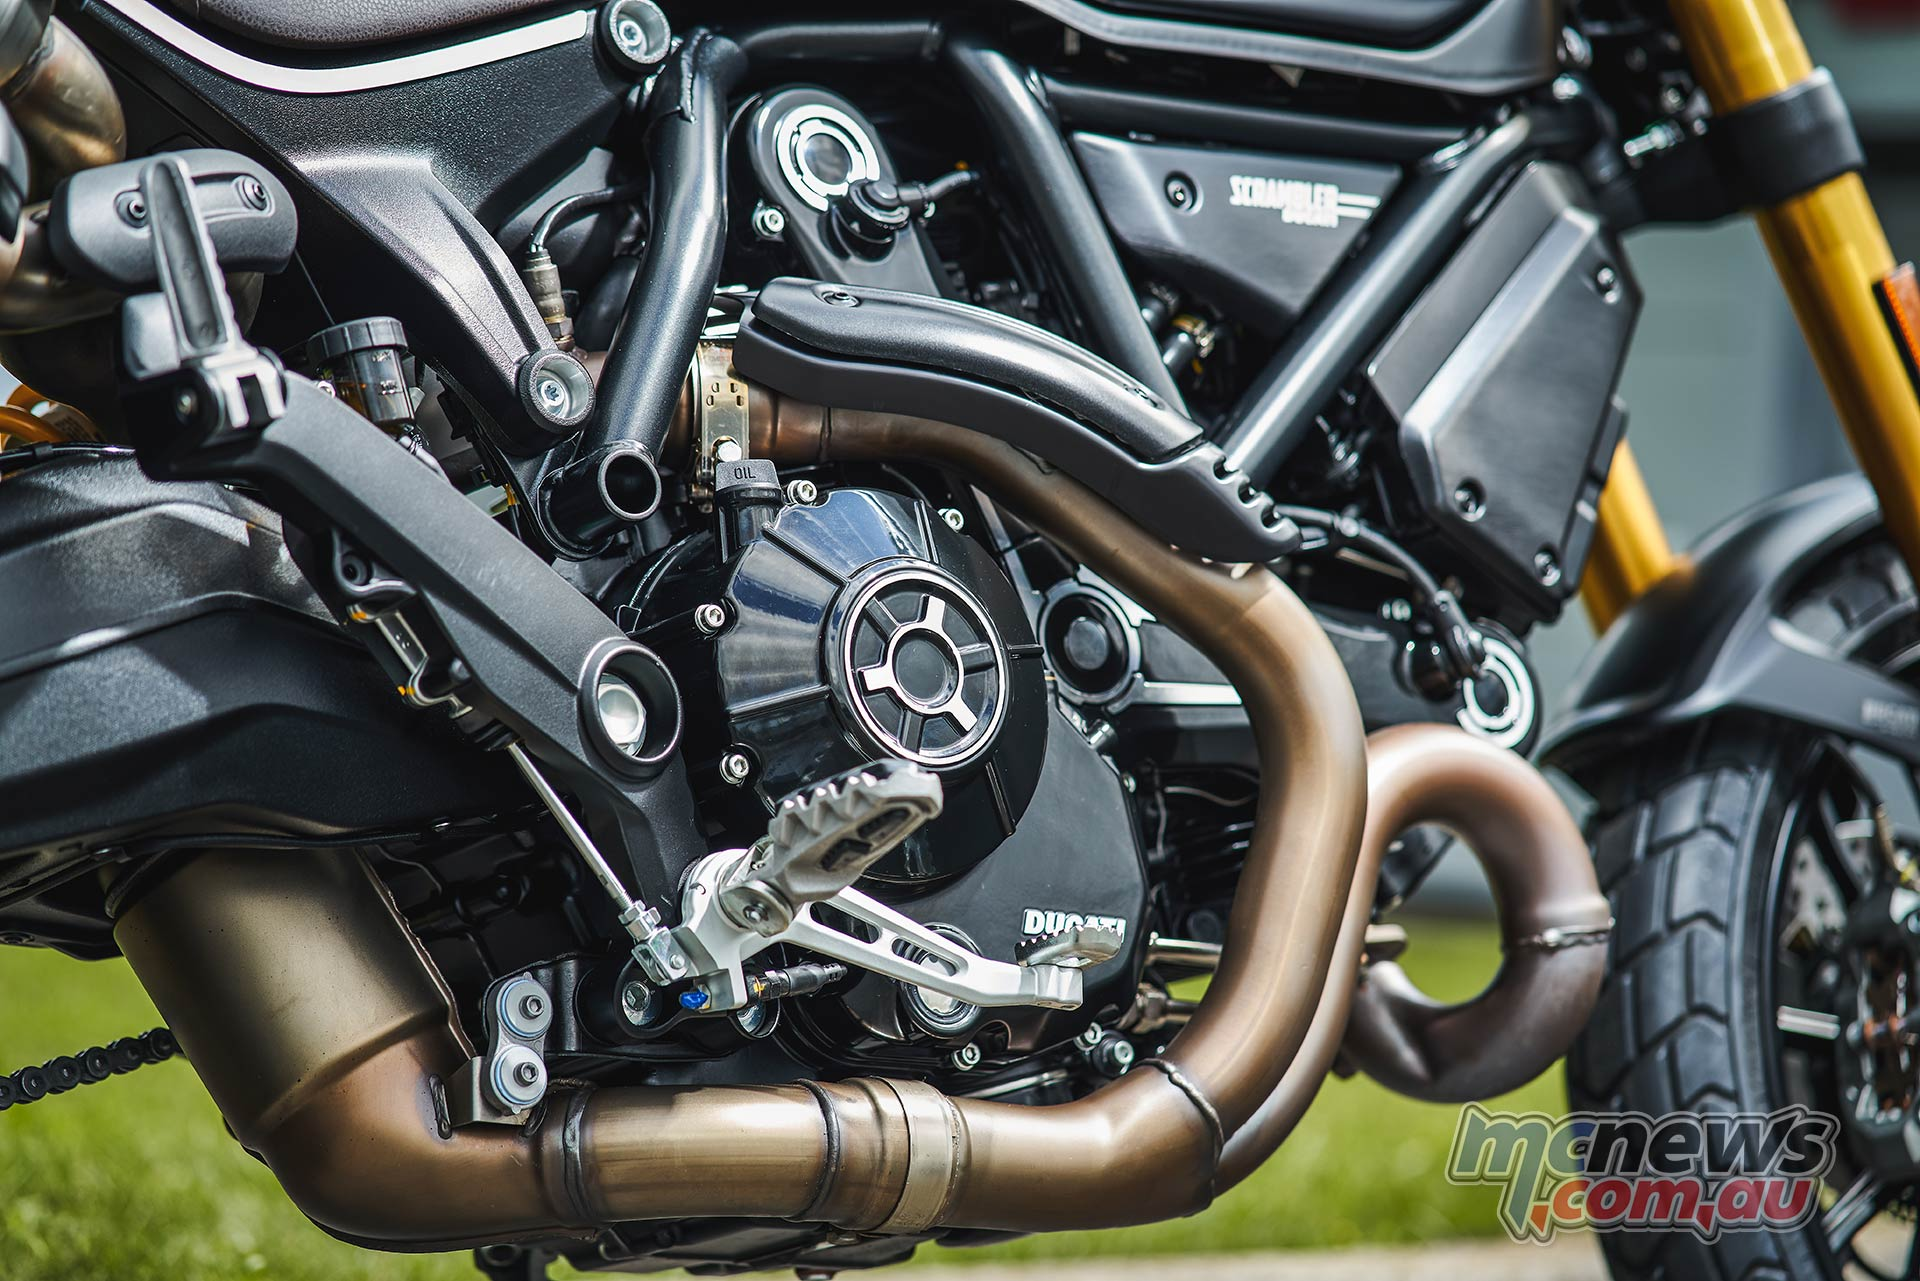 2021 Ducati Scrambler 1100 Sport Pro and Pro are powered by an 1079 cc two-valve L-Twin